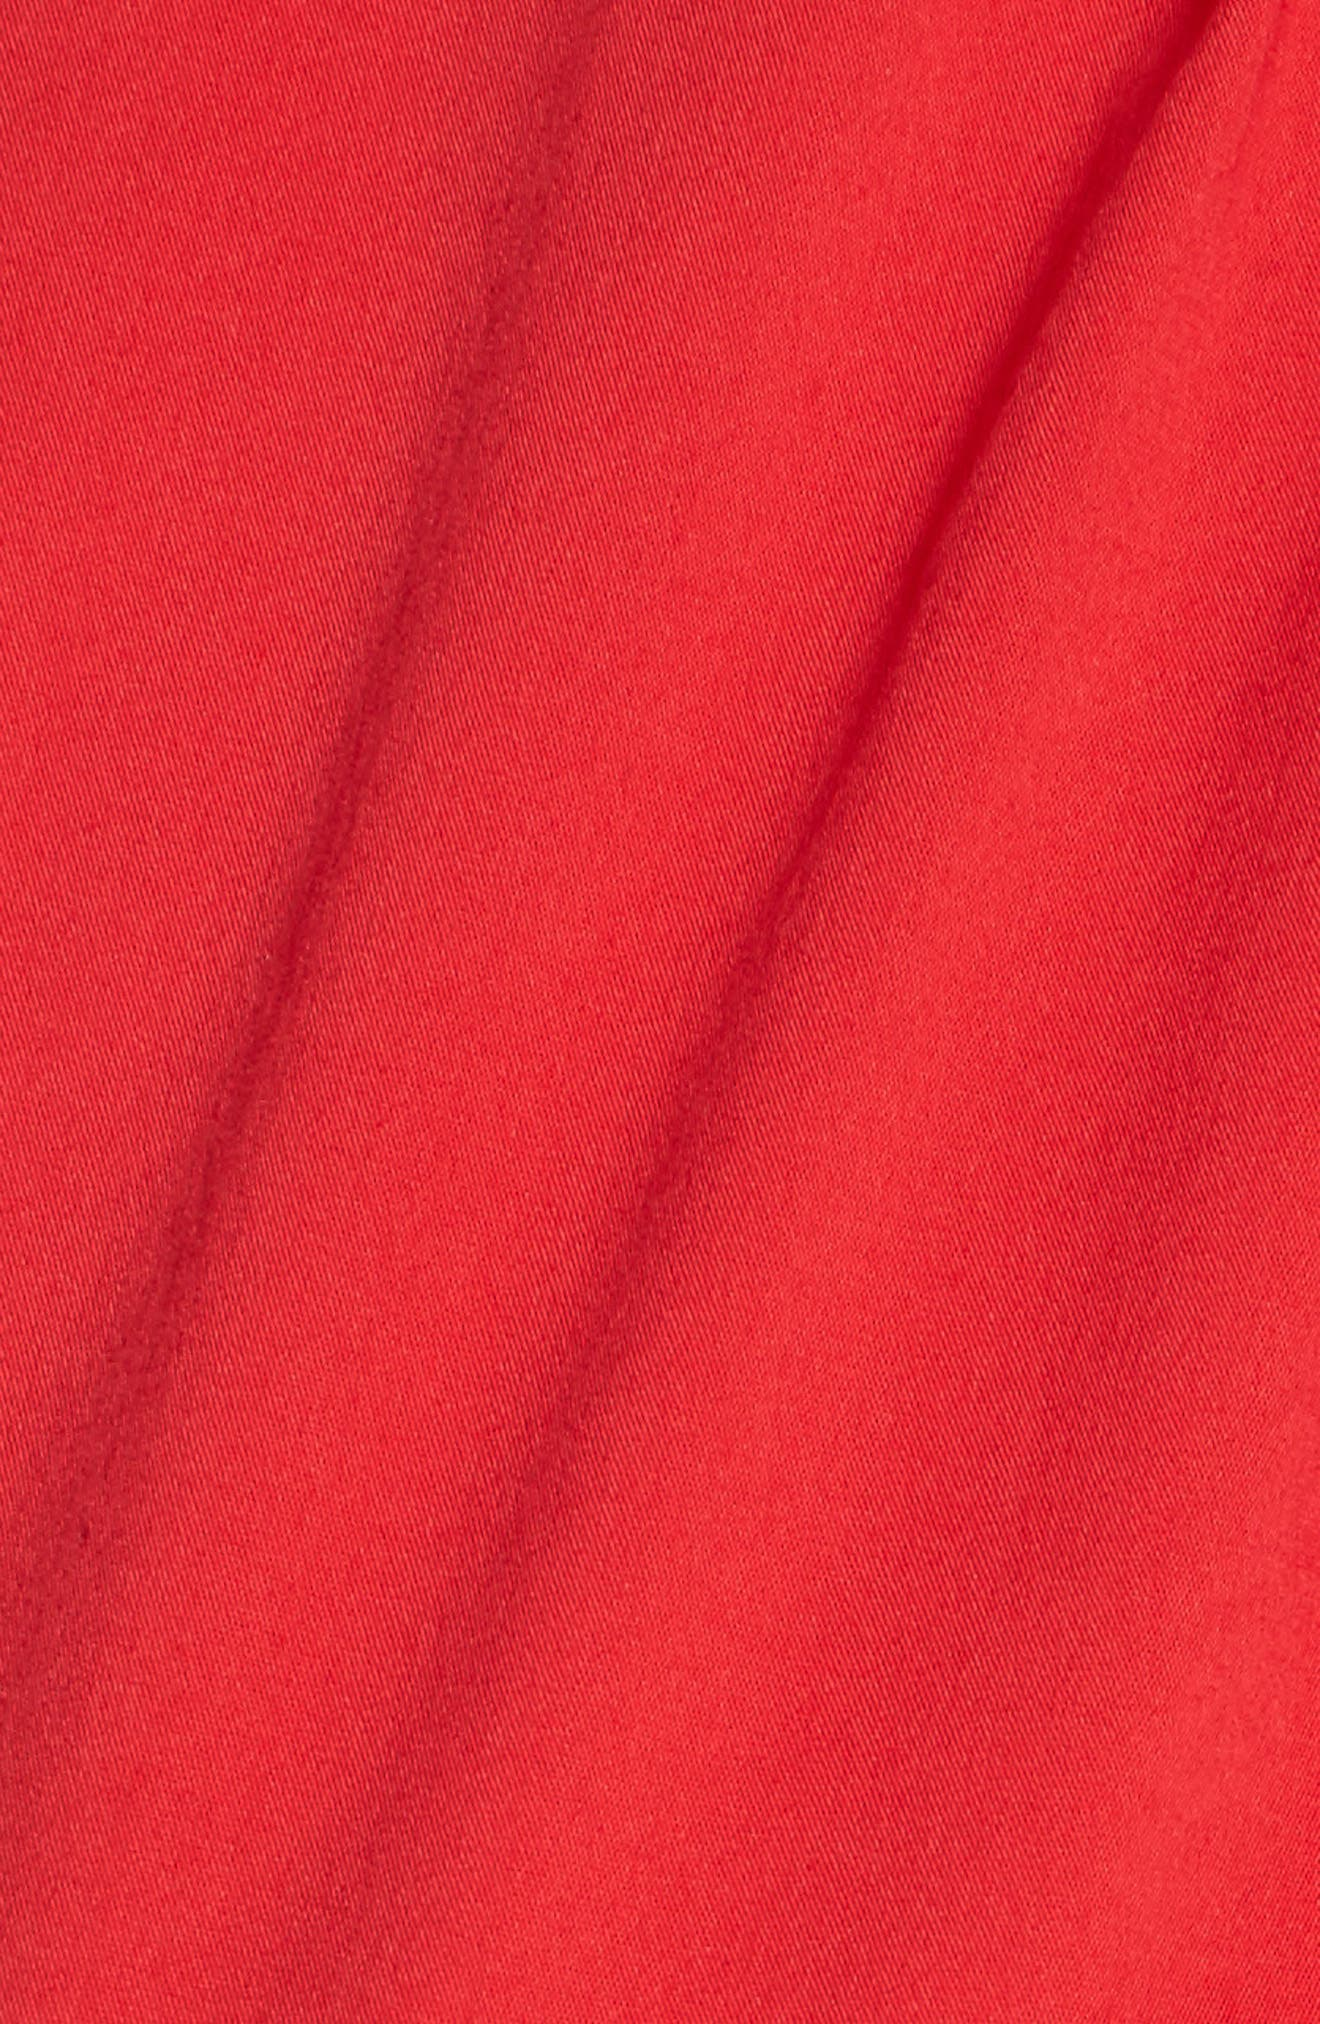 Corsage Detail Shell,                             Alternate thumbnail 5, color,                             Red Chinoise